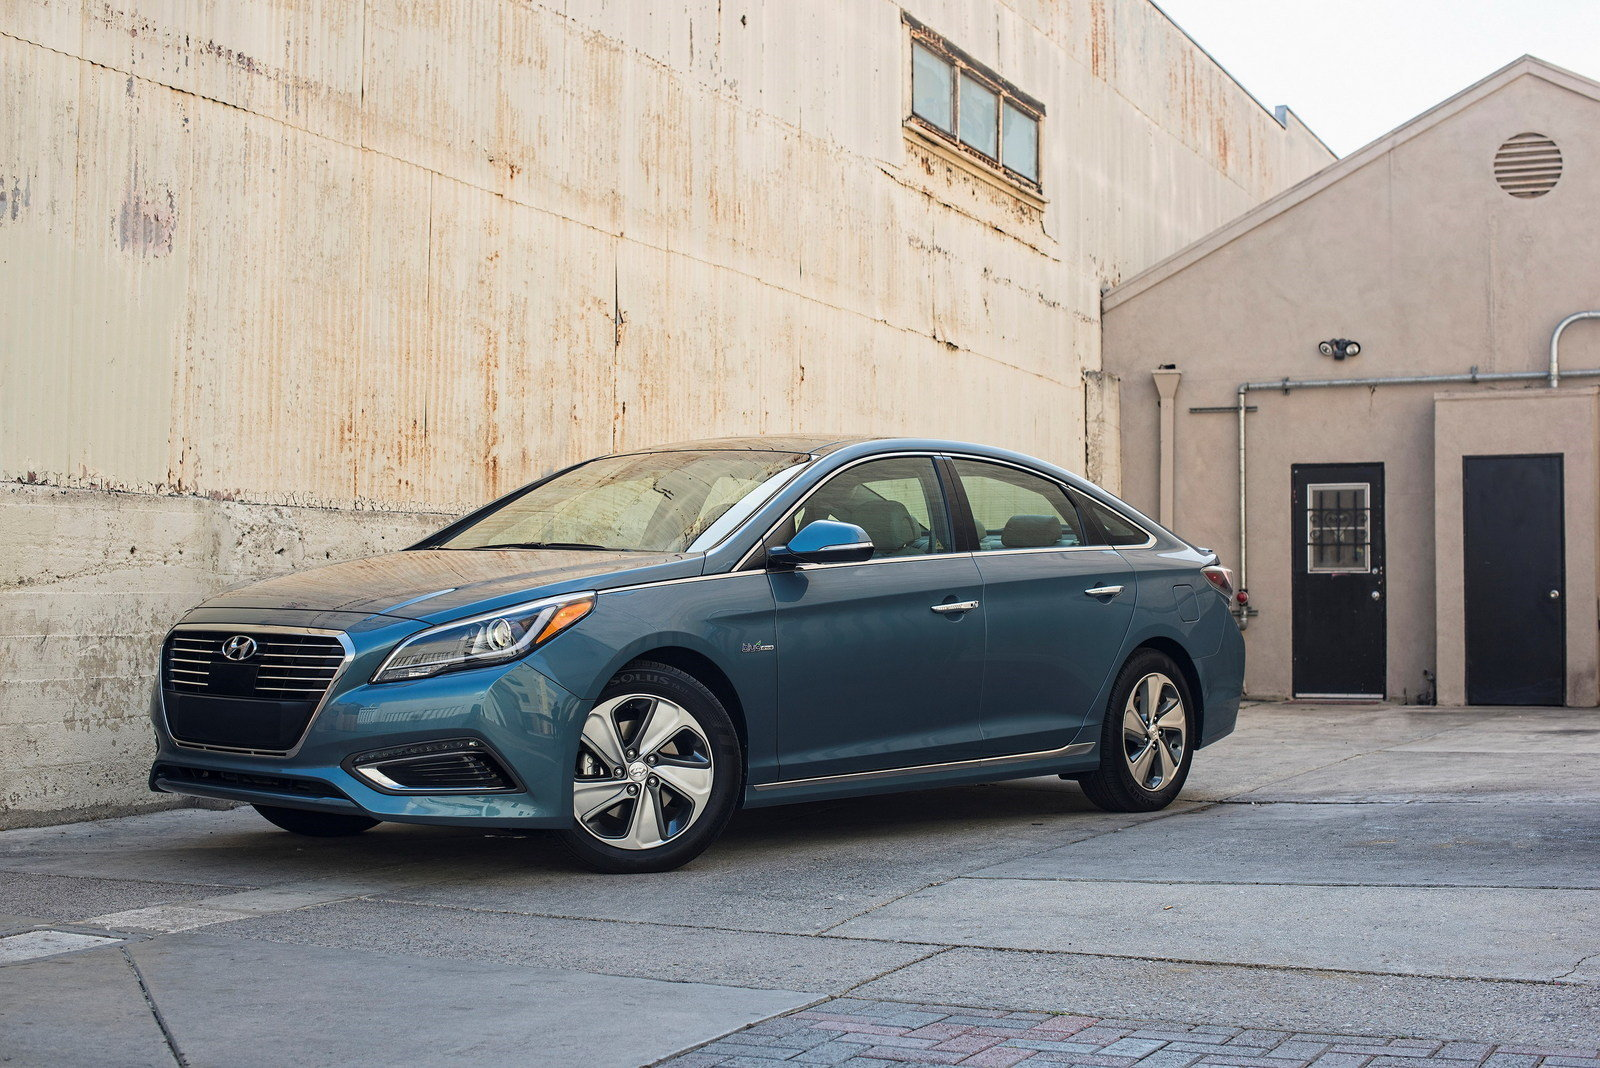 2017 hyundai sonata plug in hybrid electric vehicle picture 688074 car review top speed. Black Bedroom Furniture Sets. Home Design Ideas